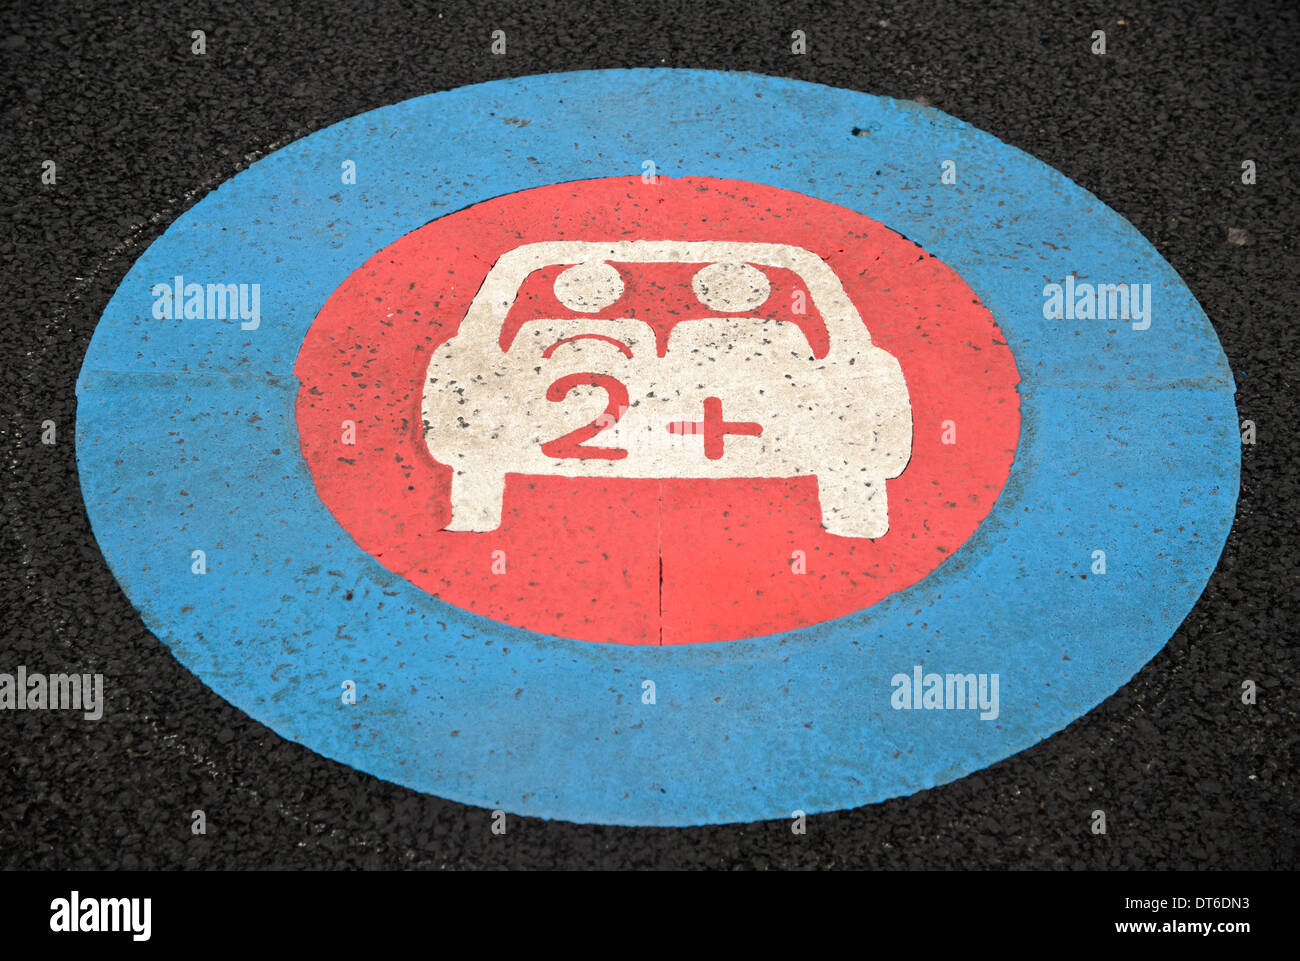 A parking space reserved for cars with more than 2 occupants. Encouraging car sharing to beat congestion. - Stock Image